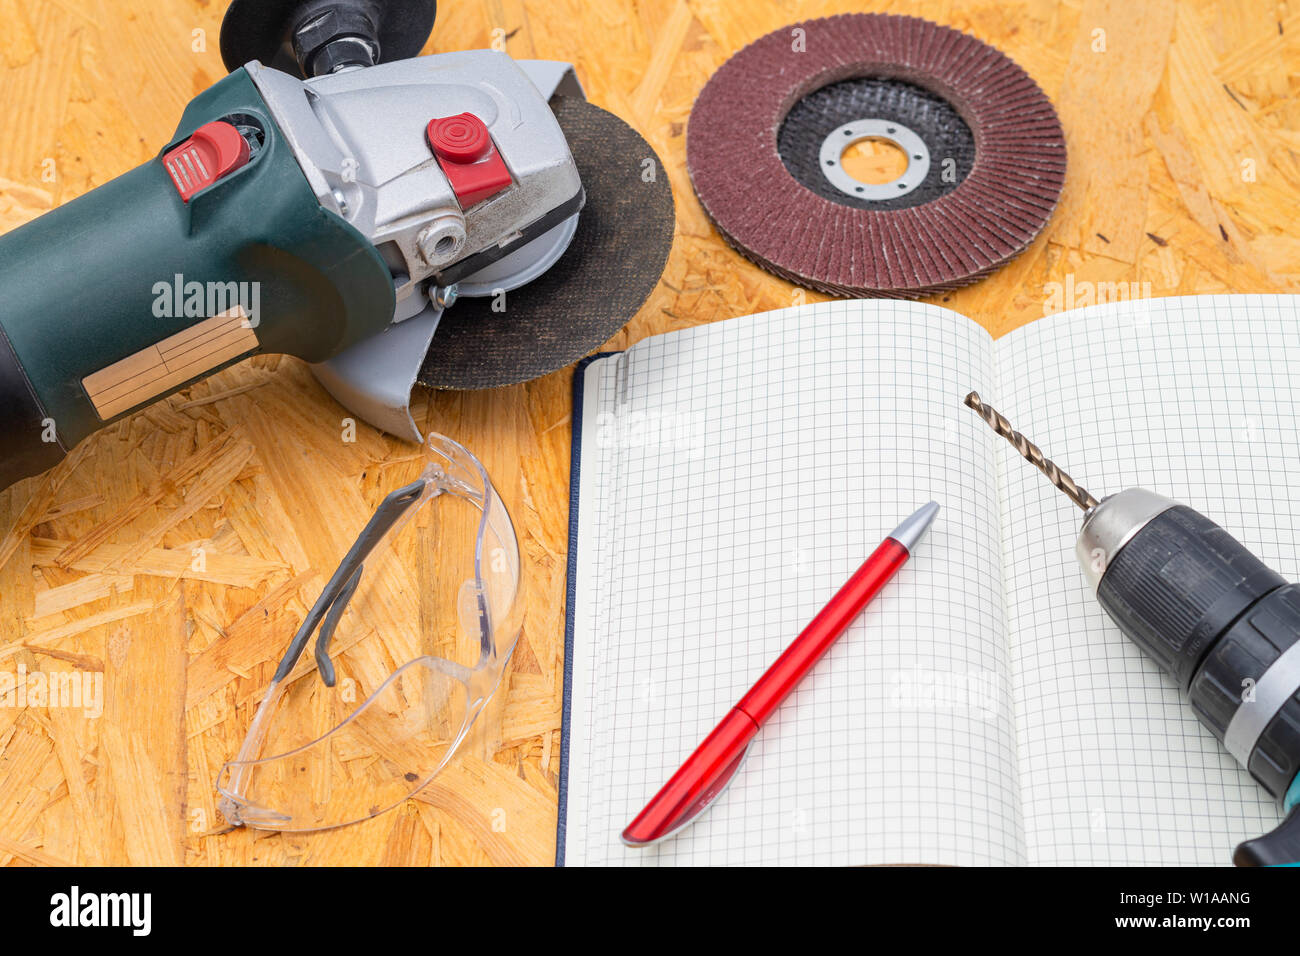 The image shows an angle grinder with a driller and notebook on a wooden table - Stock Image